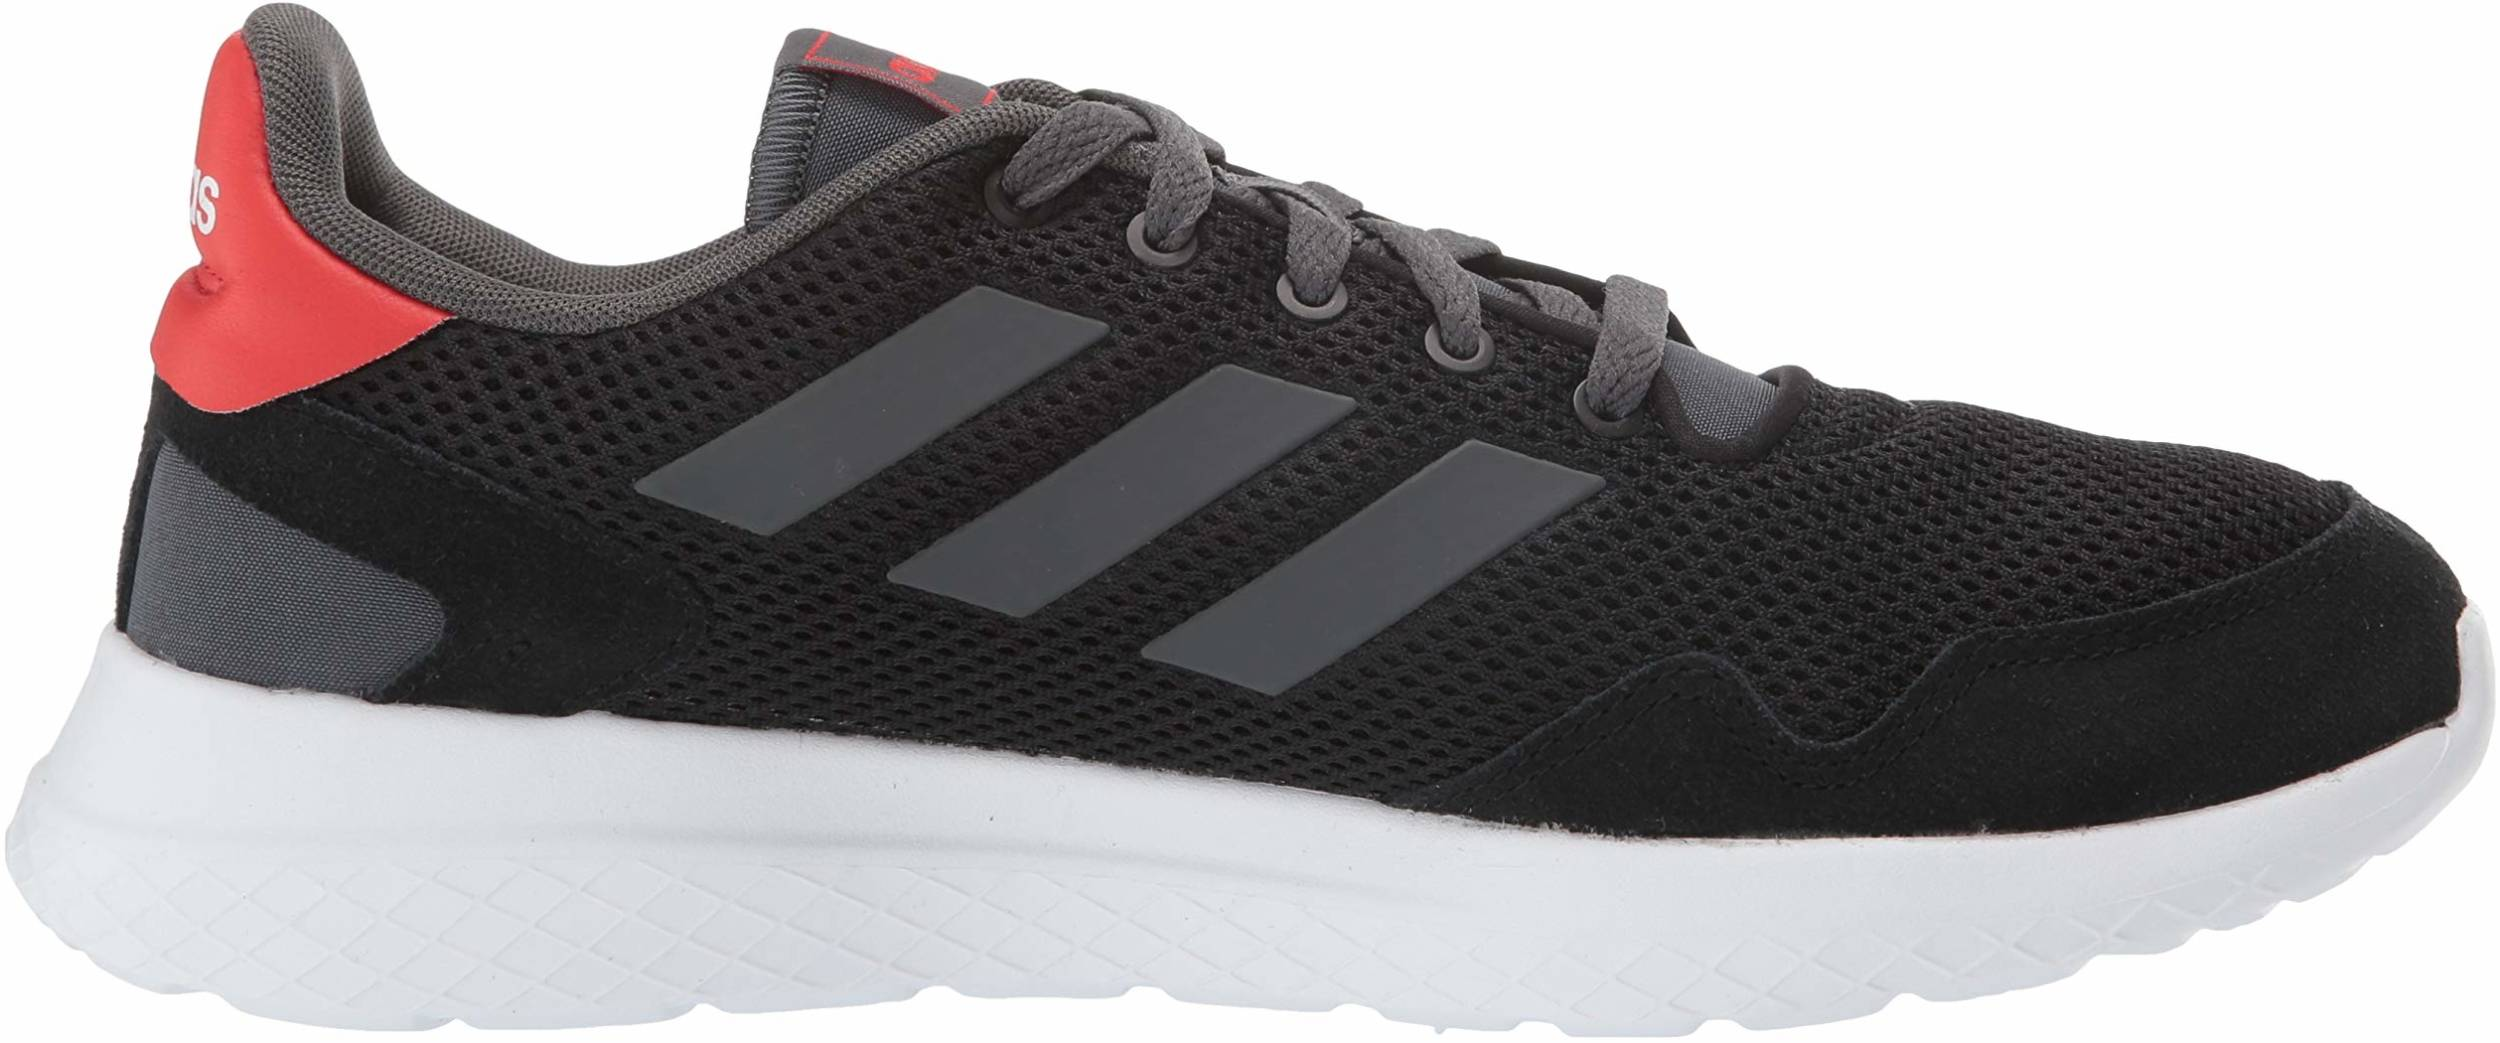 Adidas Archivo sneakers in 4 colors (only $40) | RunRepeat